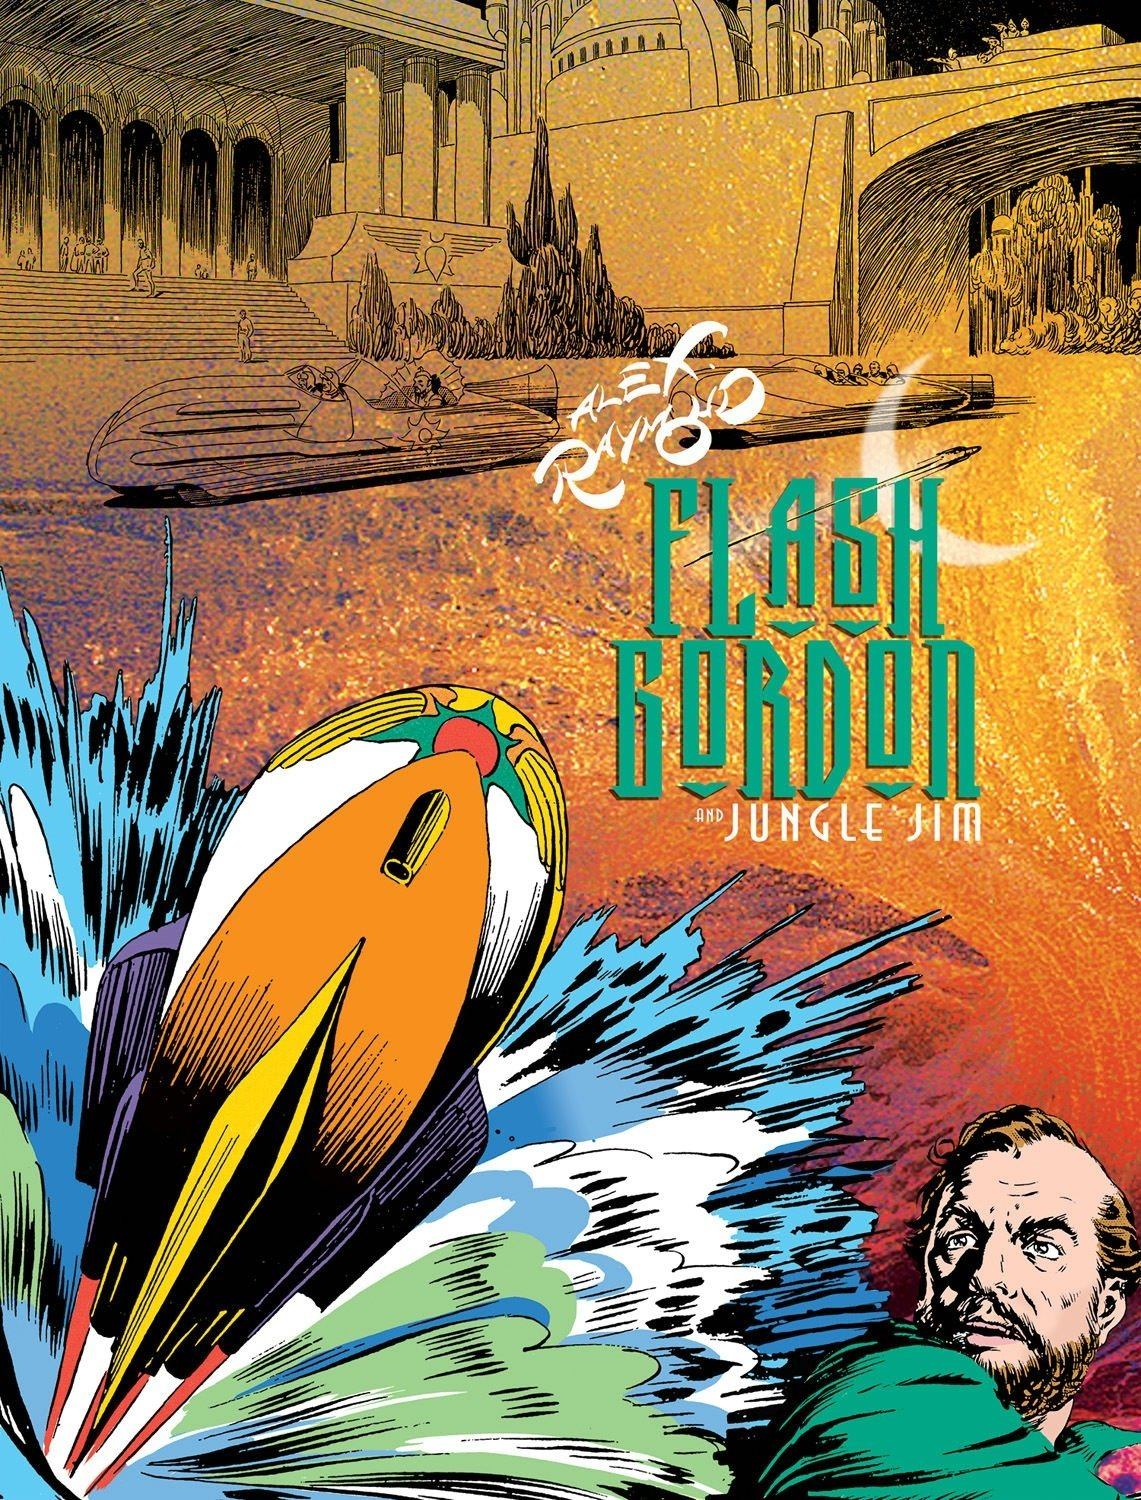 Definitive Flash Gordon and Jungle Jim Volume 4 by IDW Publishing